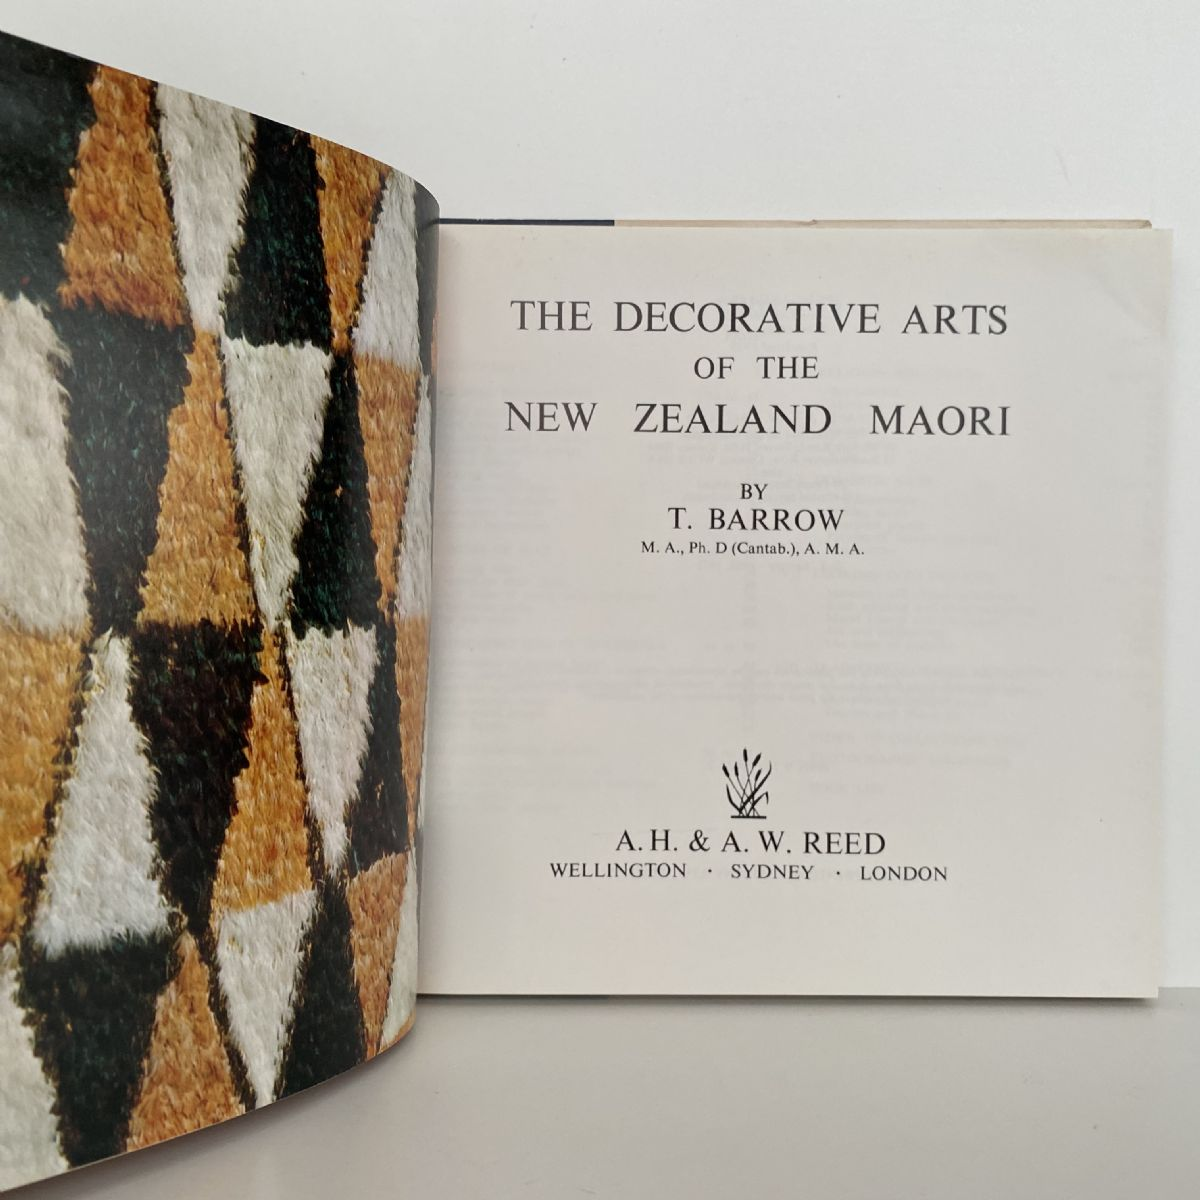 The Decorative Arts of the New Zealand Maori